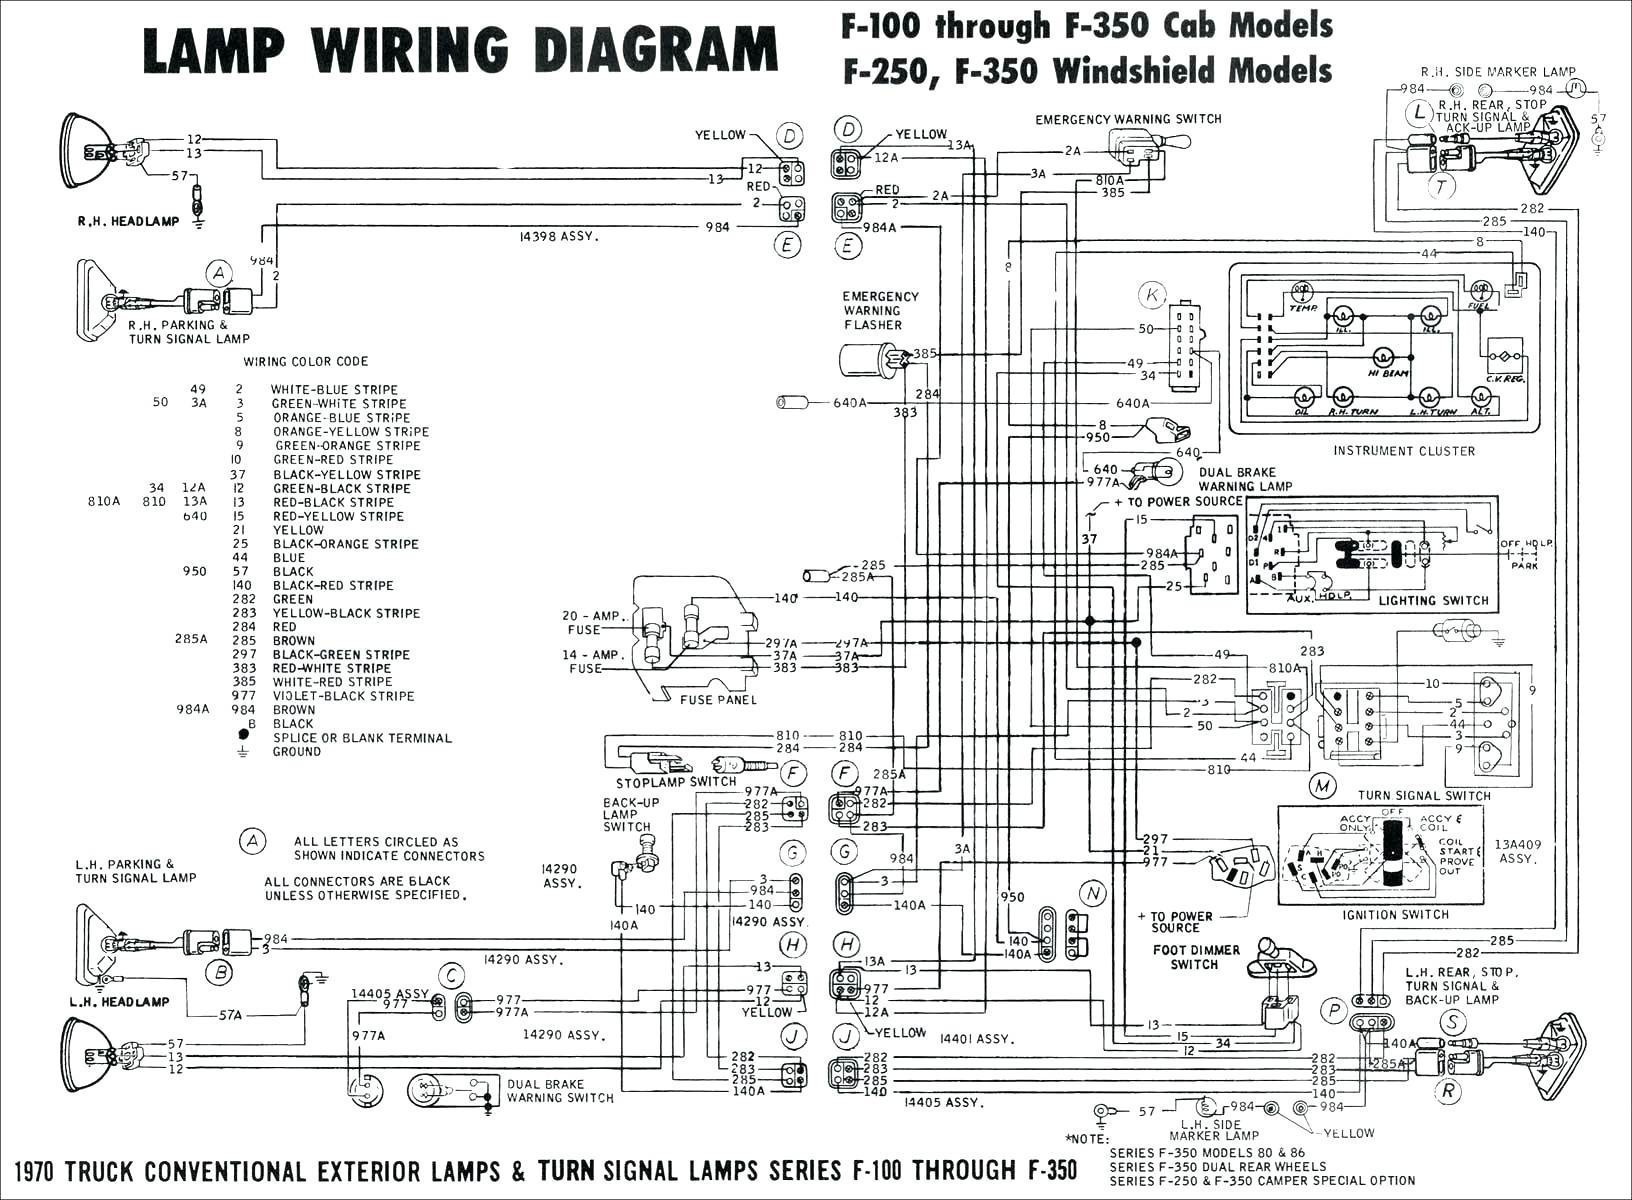 2002 Jeep Grand Cherokee Engine Diagram 2 Basic Ignition System Wiring Diagram New 2002 Jeep Grand Cherokee Of 2002 Jeep Grand Cherokee Engine Diagram 2 2005 Jeep Grand Cherokee Trailer Wiring Diagram Collection